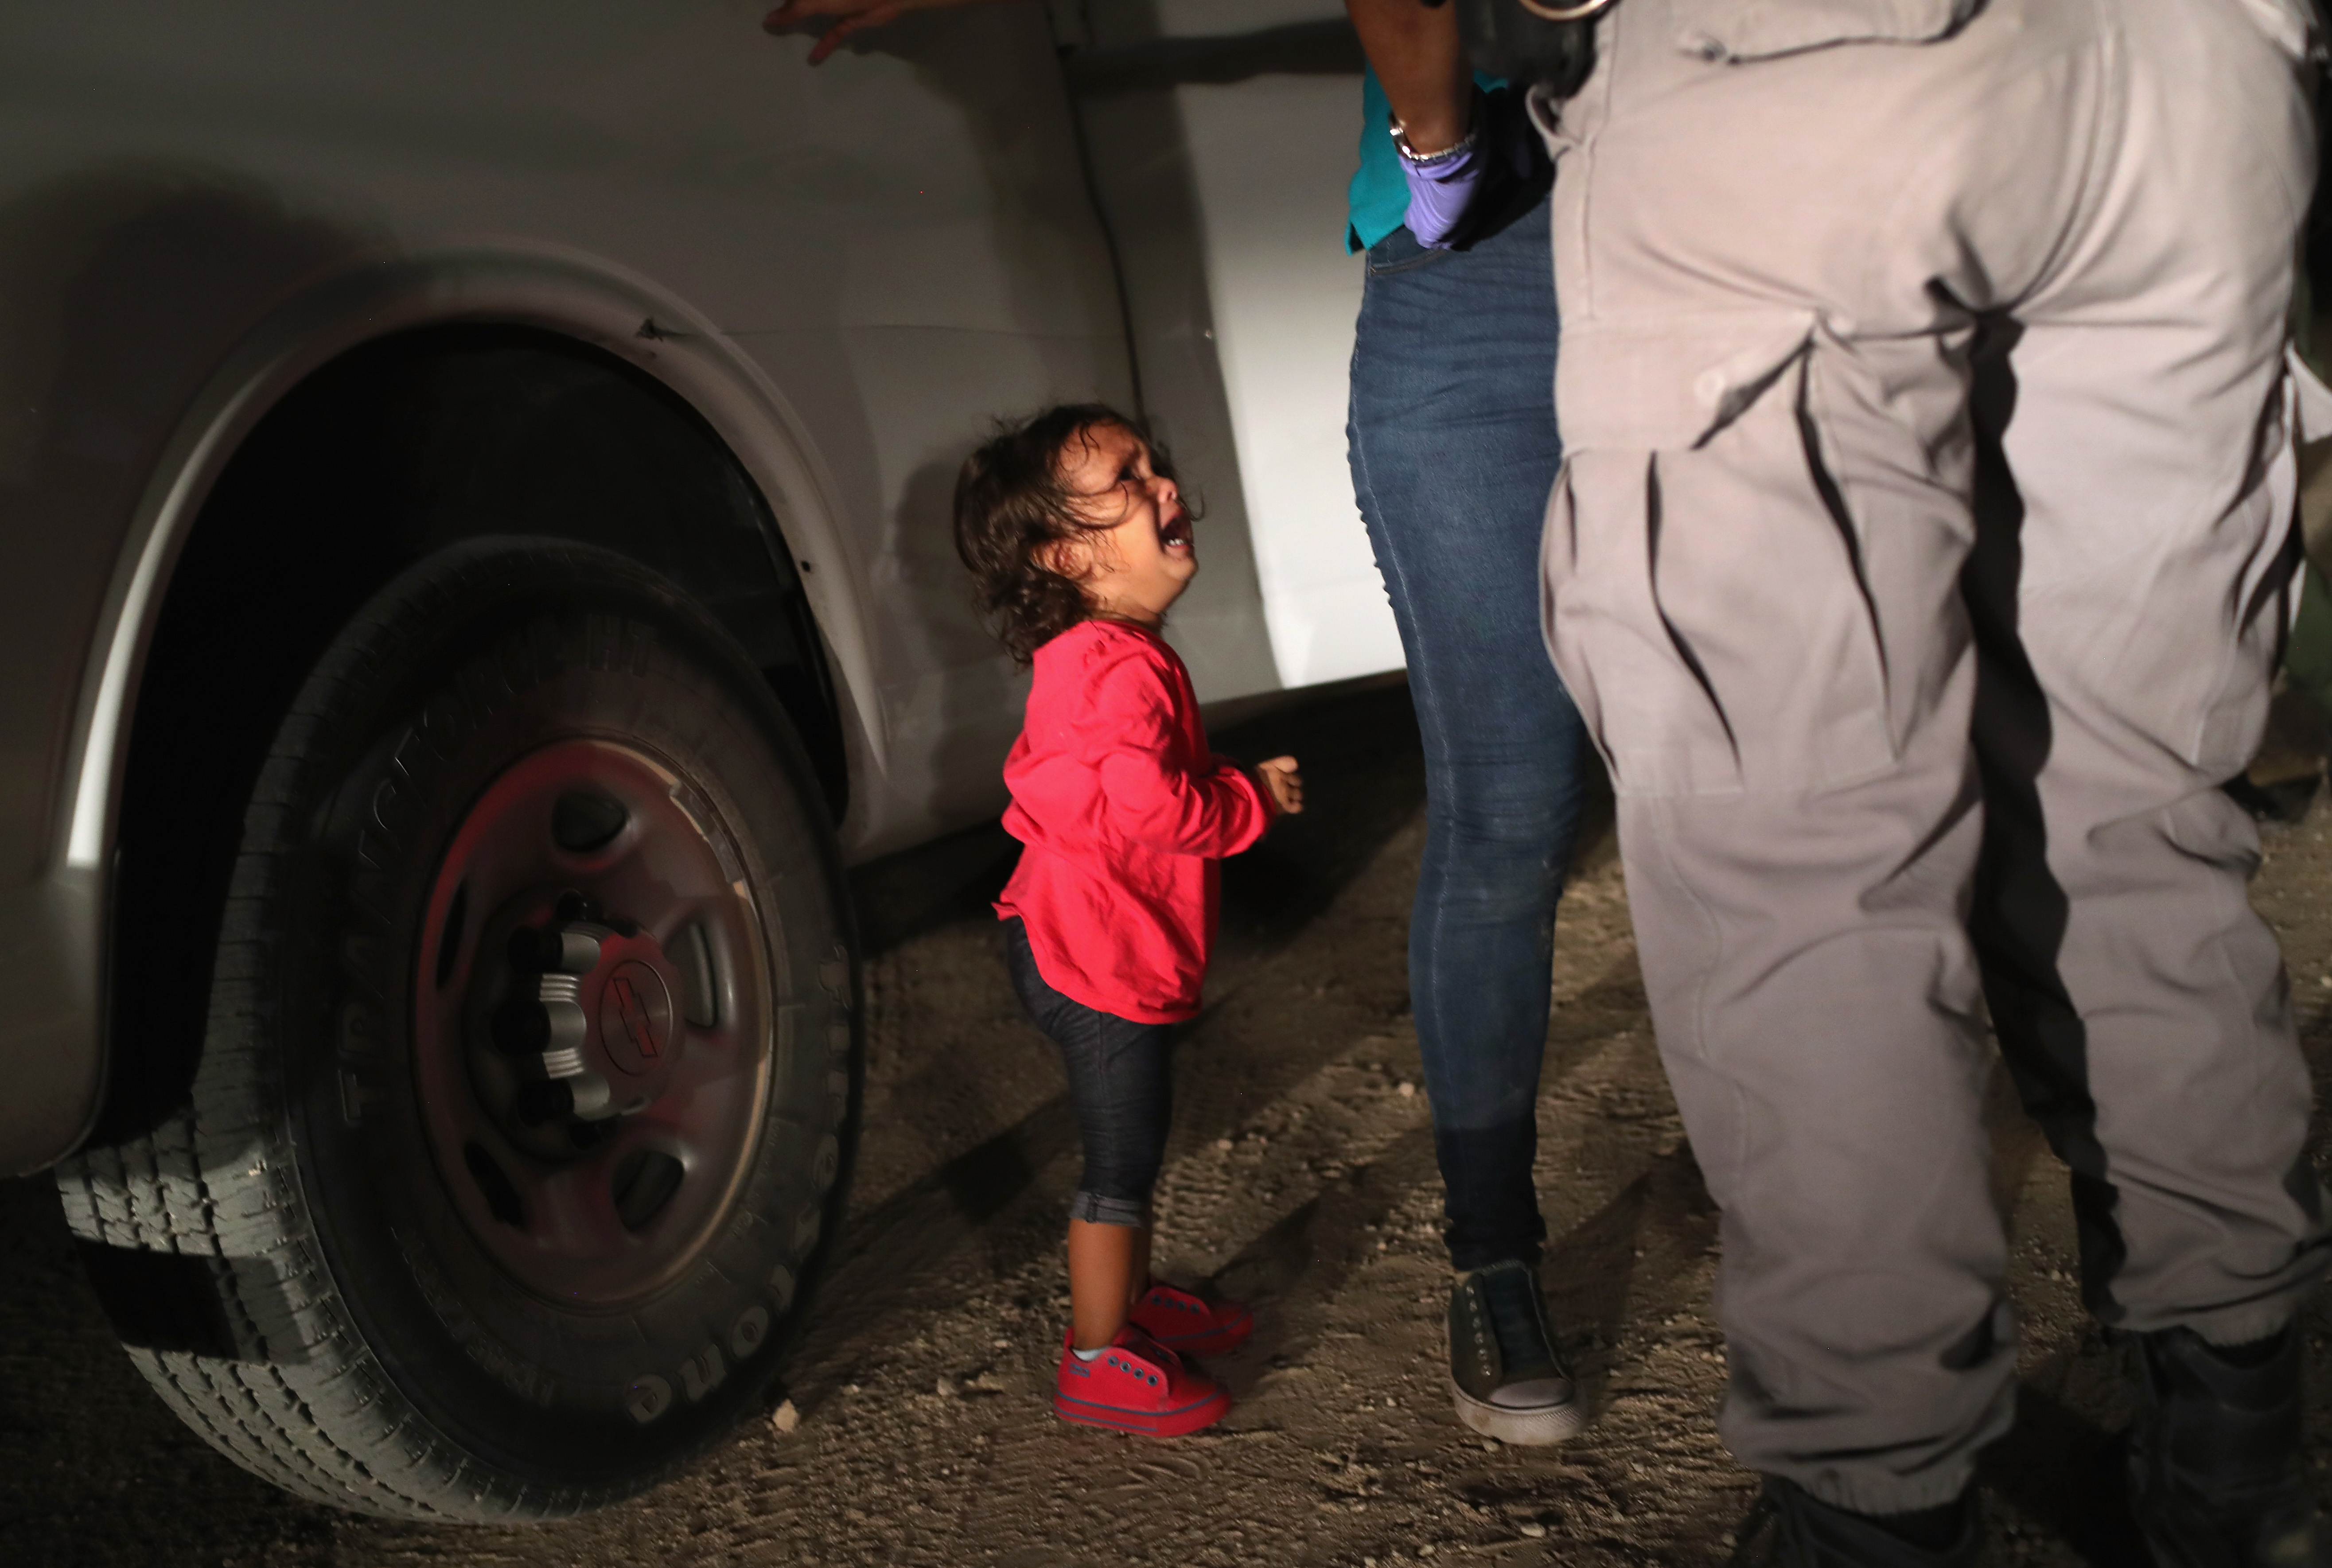 A 2-year-old Honduran girl cries as an official searches her mother near the U.S.-Mexico border earlier this month in McAllen, Texas. For many, the image has become indelibly associated with a Trump administration policy that for weeks separated migrant children from their parents — but the girl's father says she was not separated from her mother.